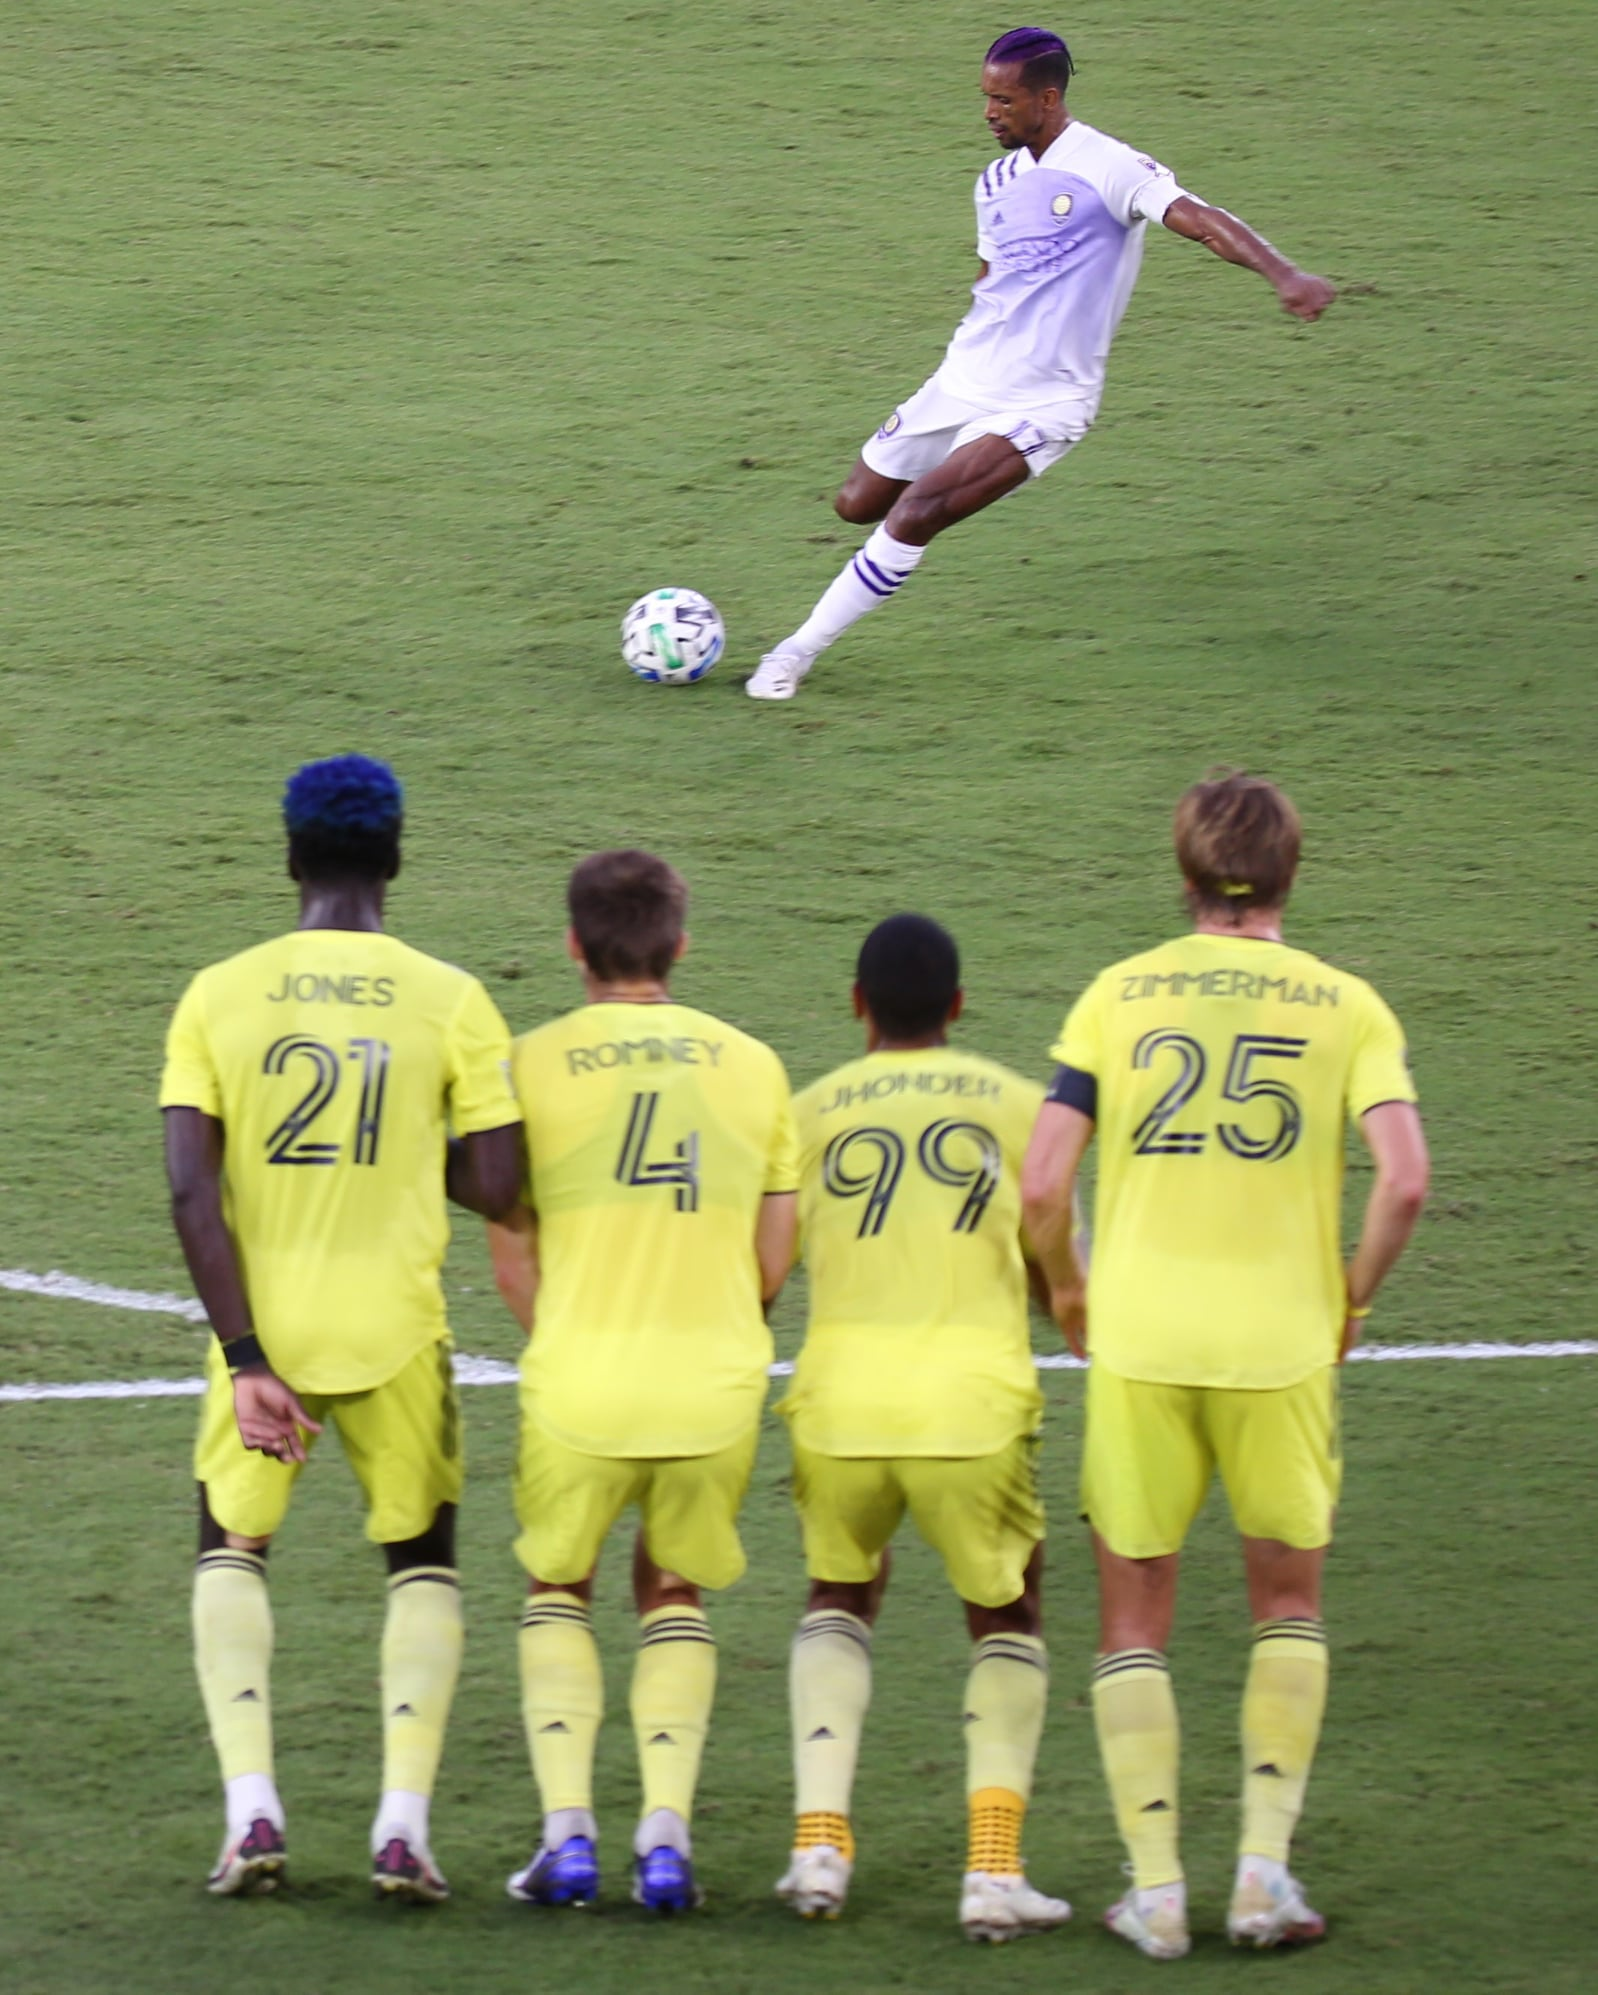 Orlando City SC midfielder Luis Nani makes a goal-winning free kick in the second half against Nashville SC Sunday night at Exploria Stadium. Photo: Mellissa Thomas/Florida National News.